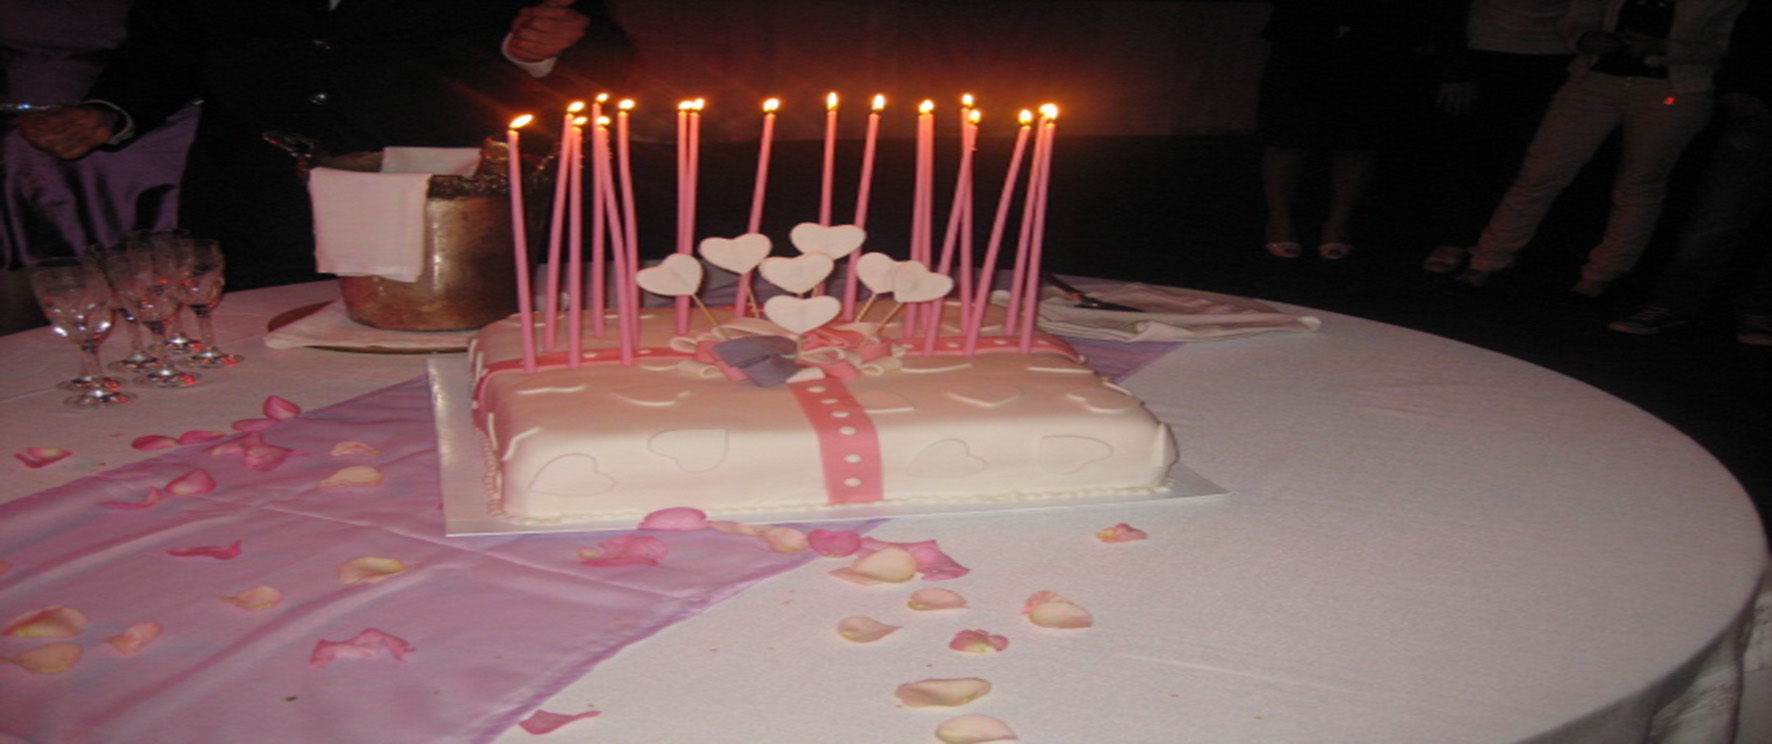 compleanno 4